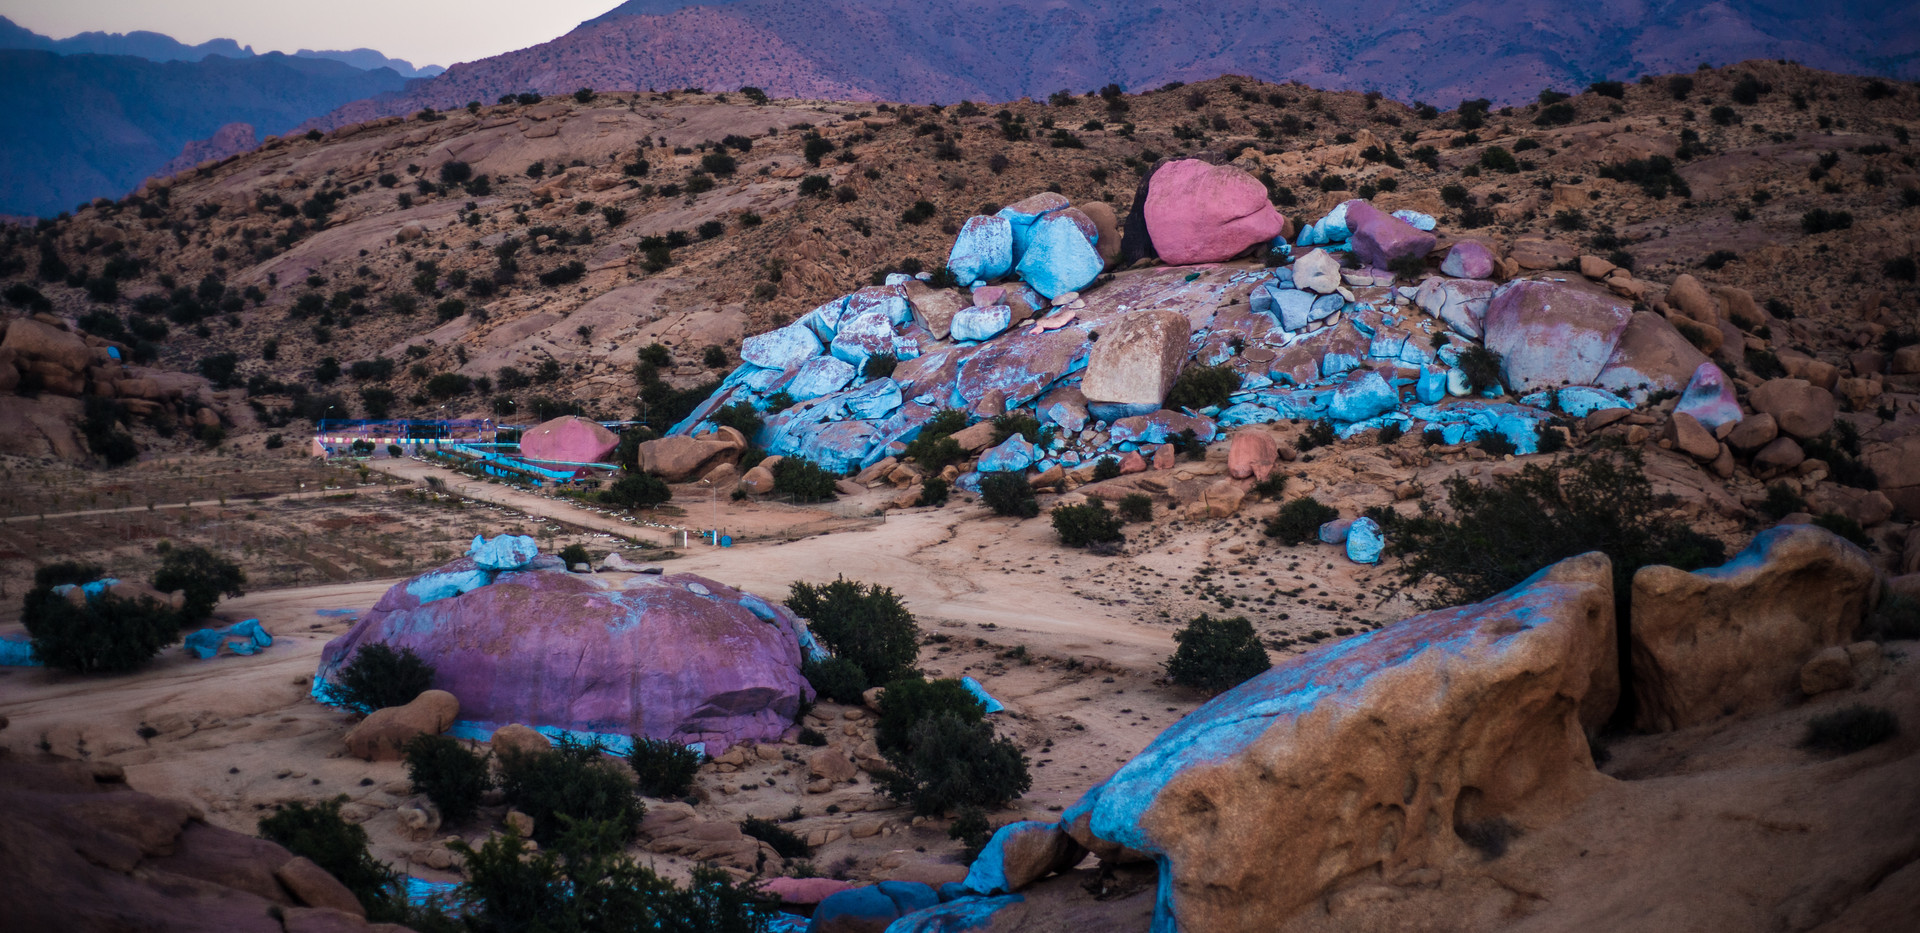 Painted rocks in tafraout morocco.jpg